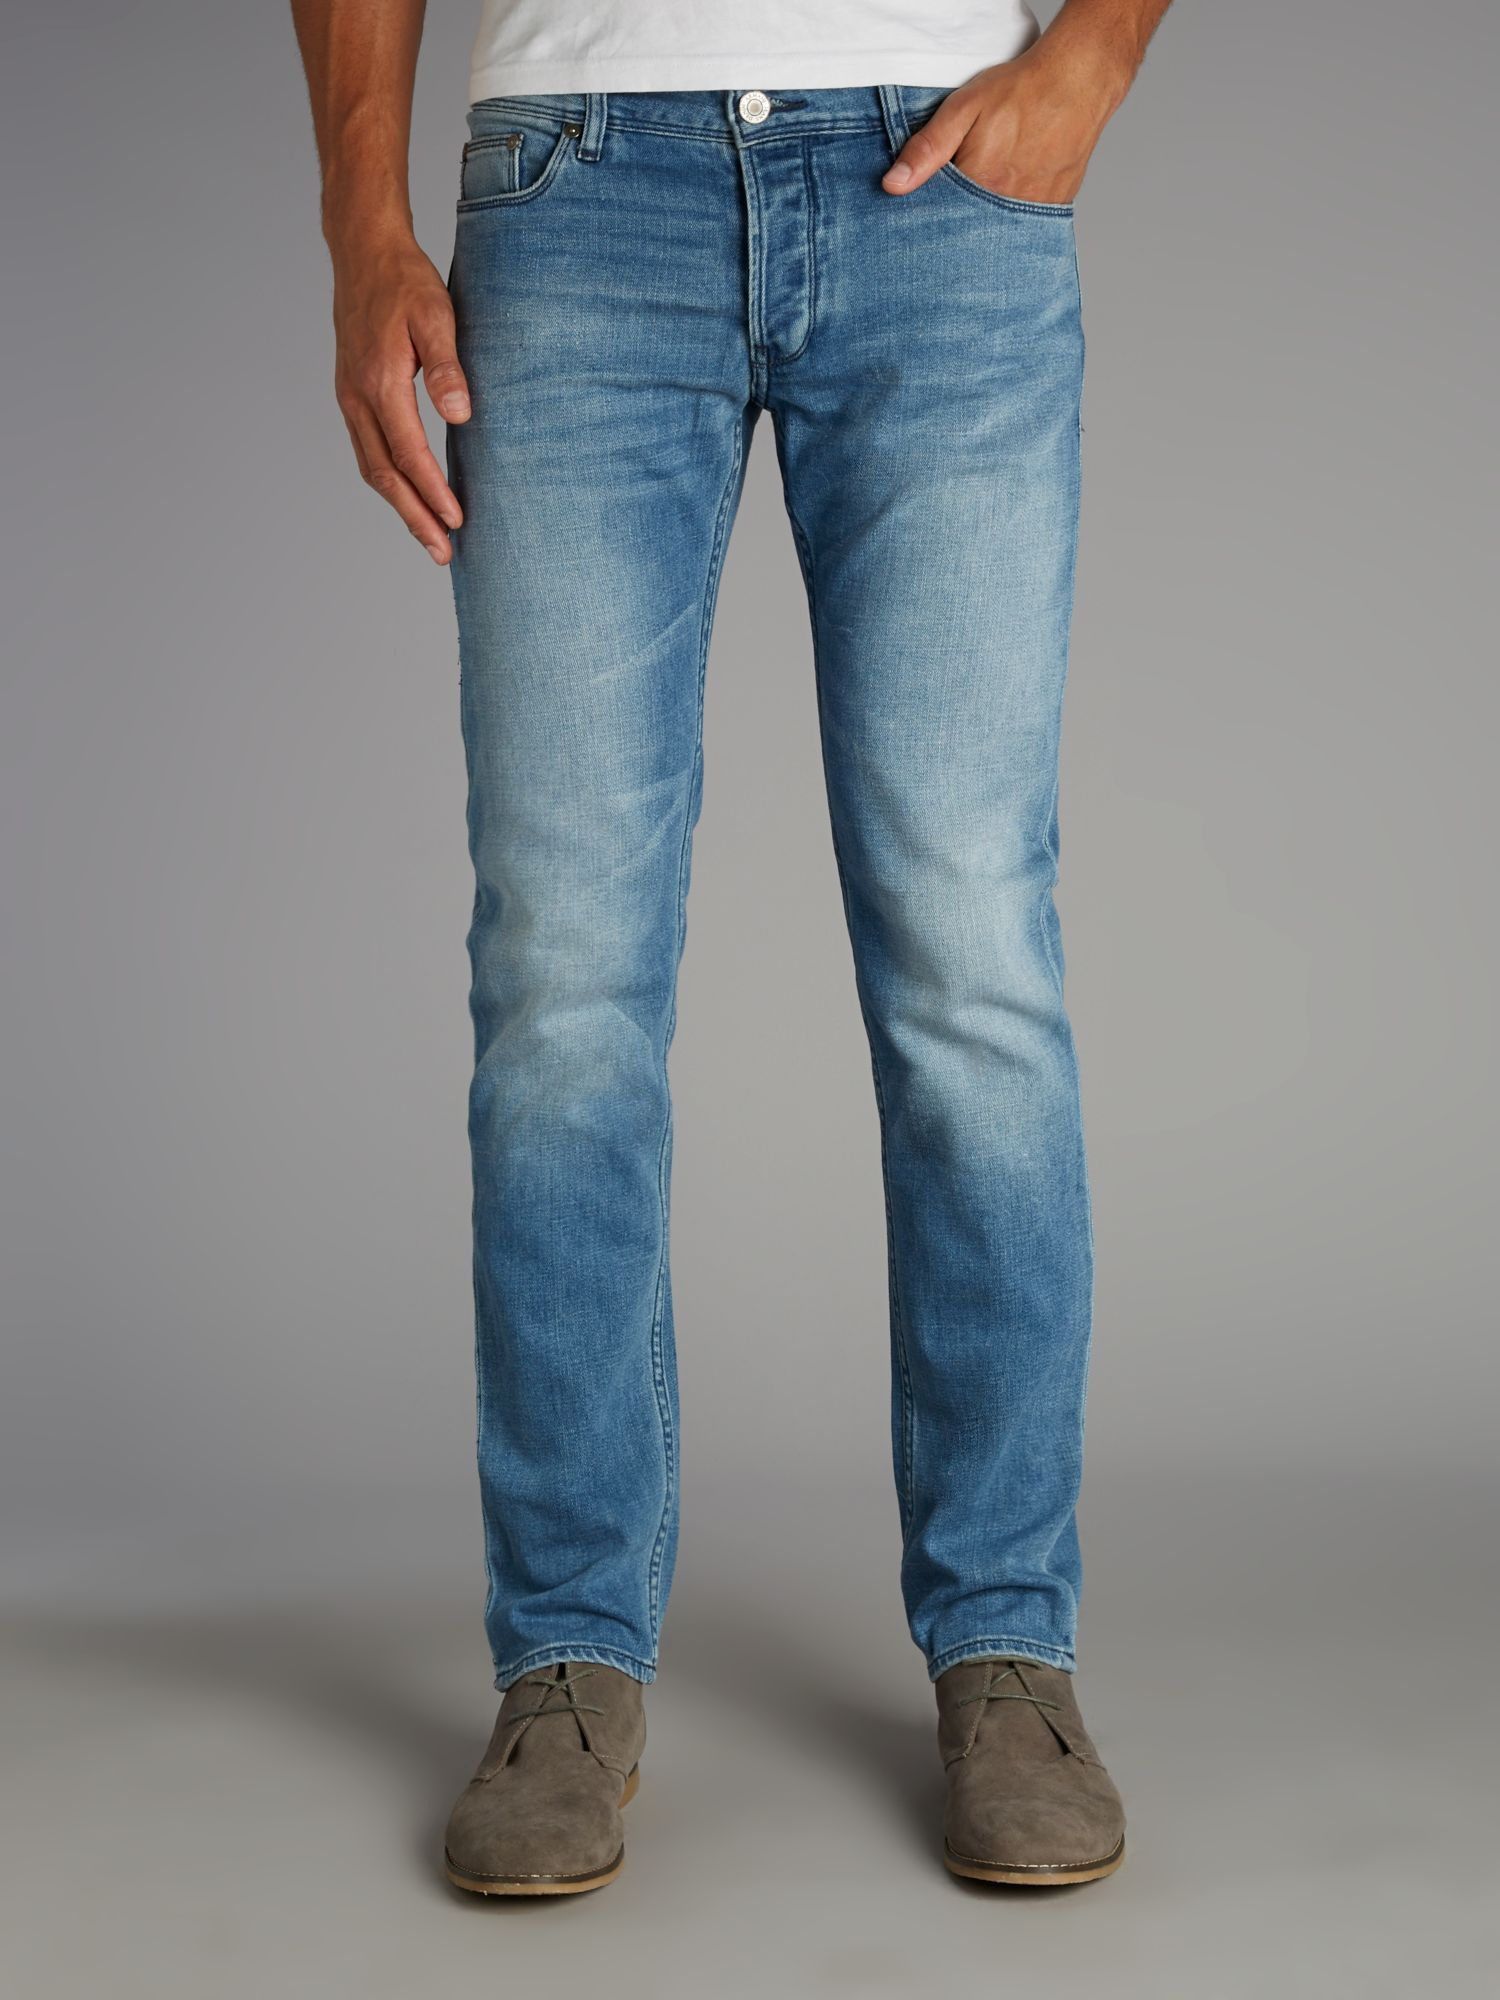 Armani jeans Light Wash Slim Fit Jean in Blue for Men | Lyst